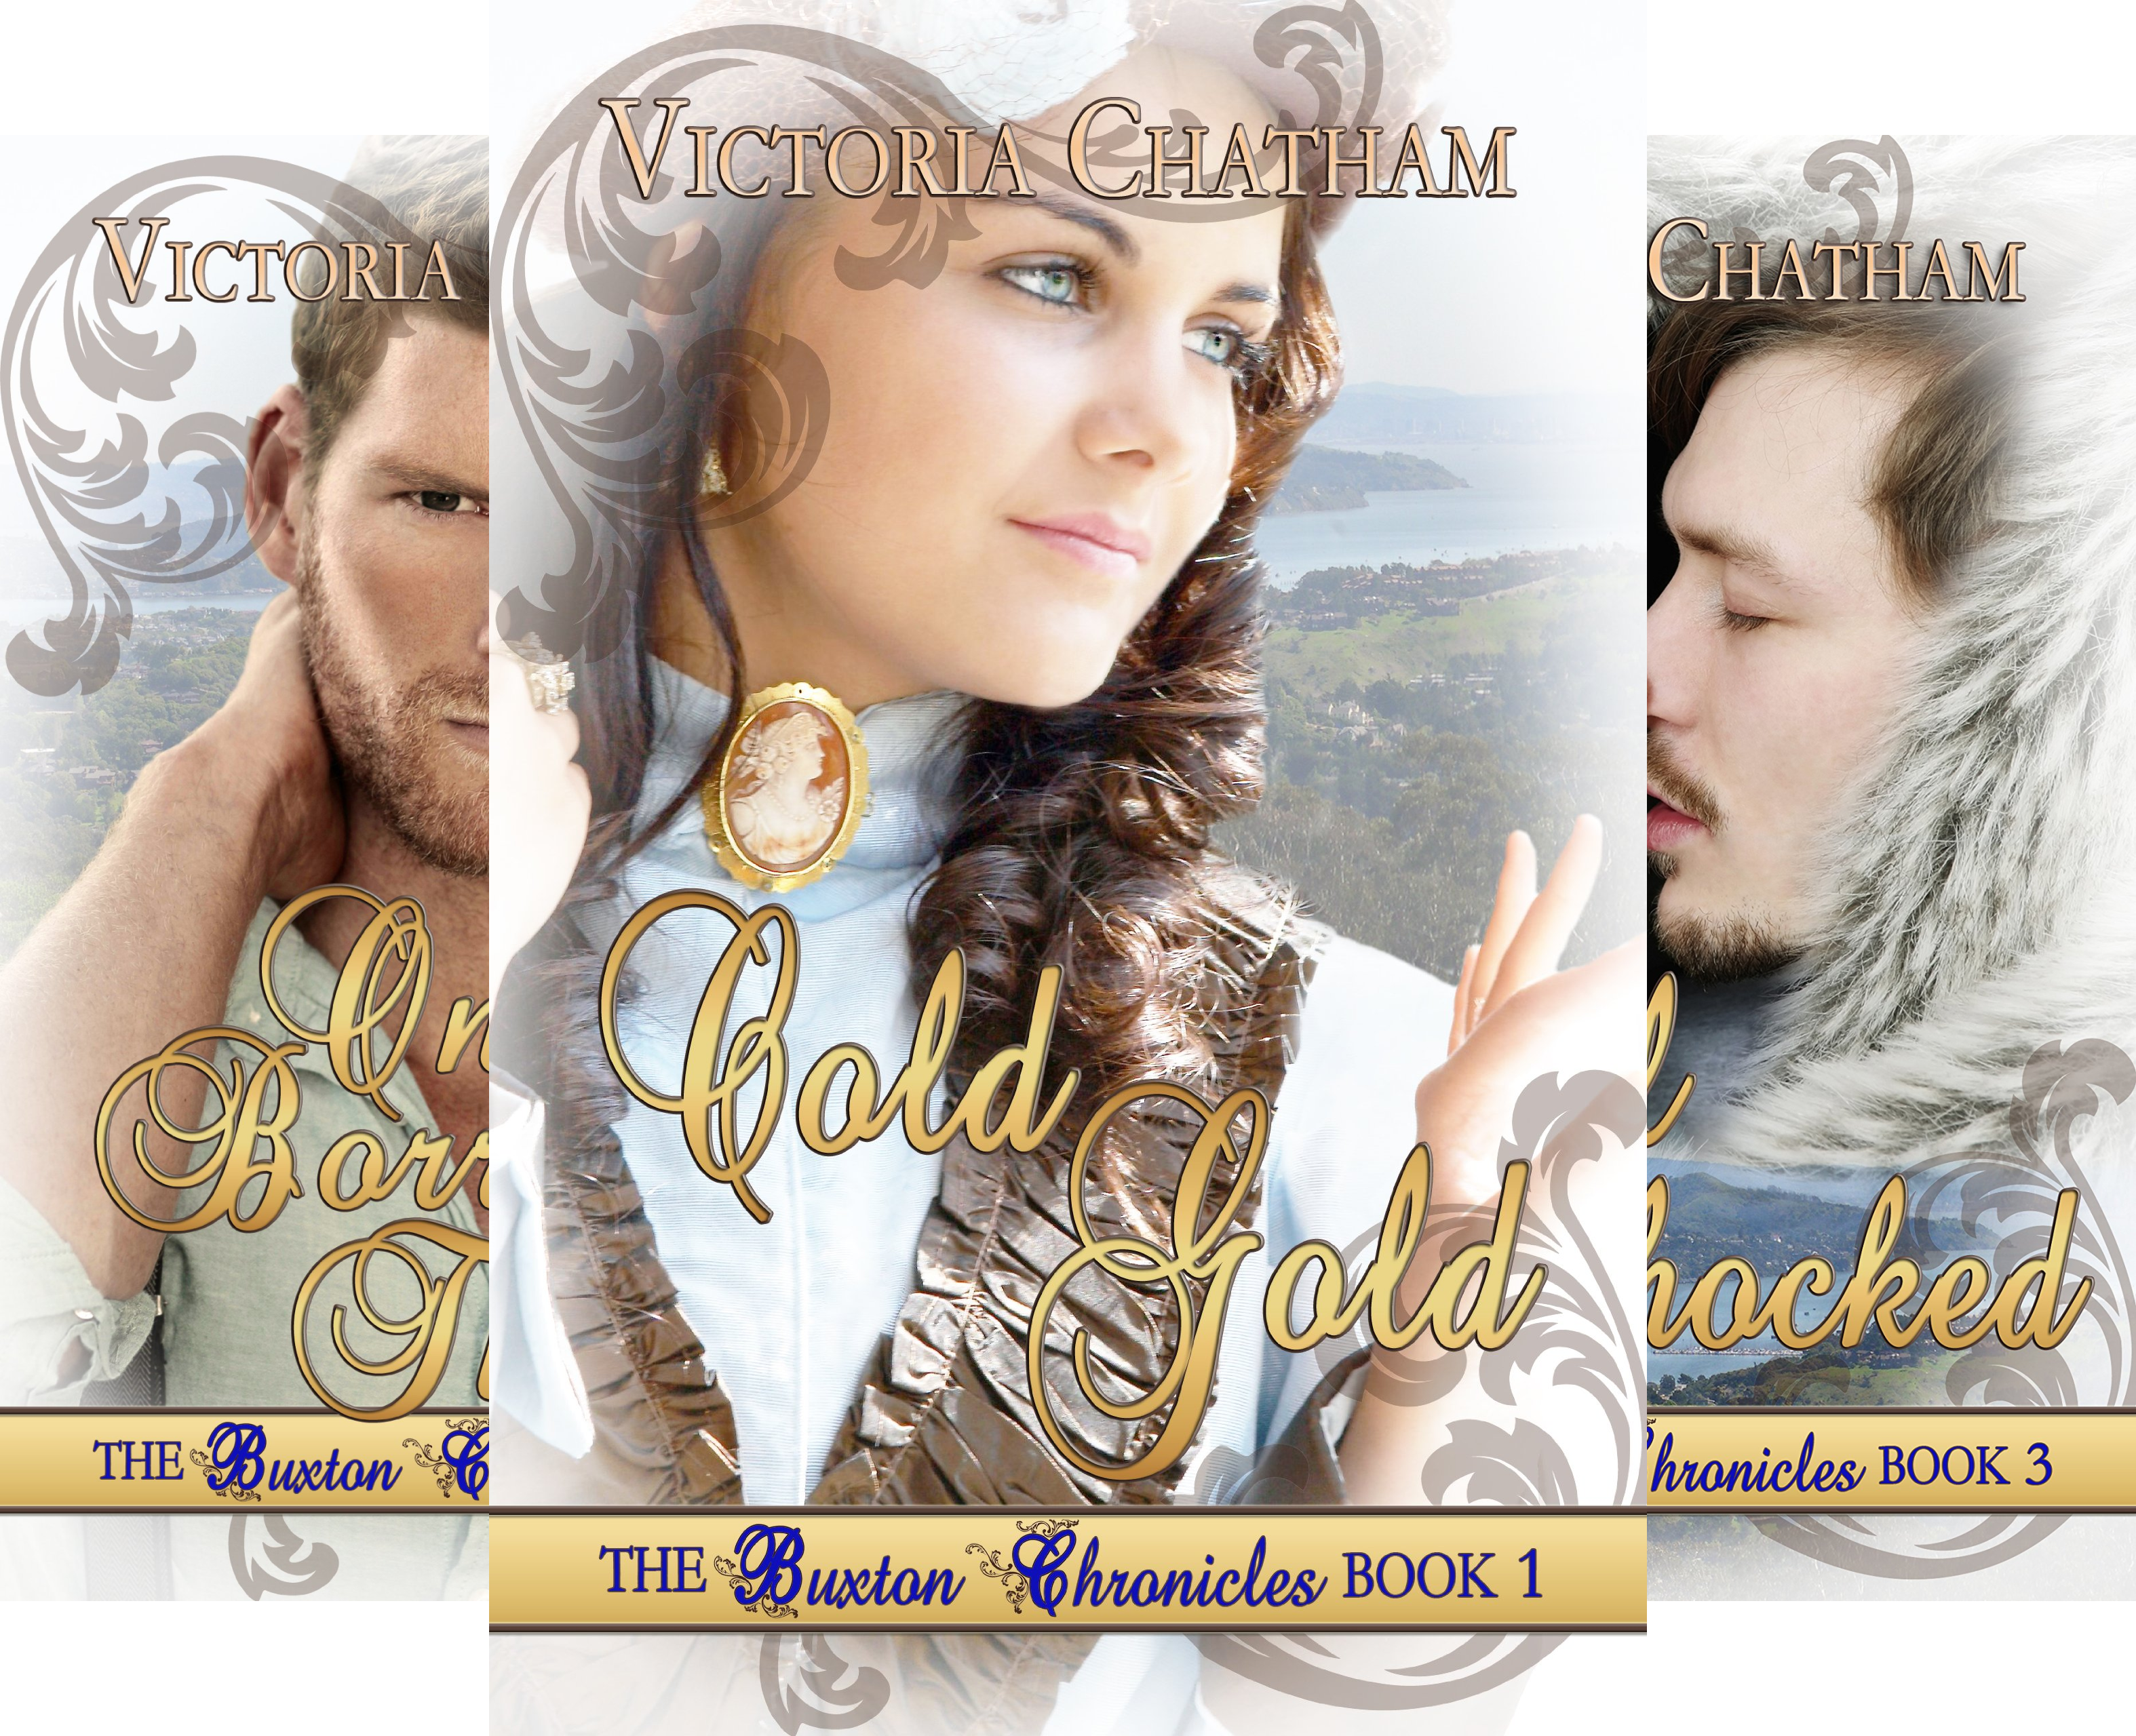 The Buxton Chronicles (3 Book Series)